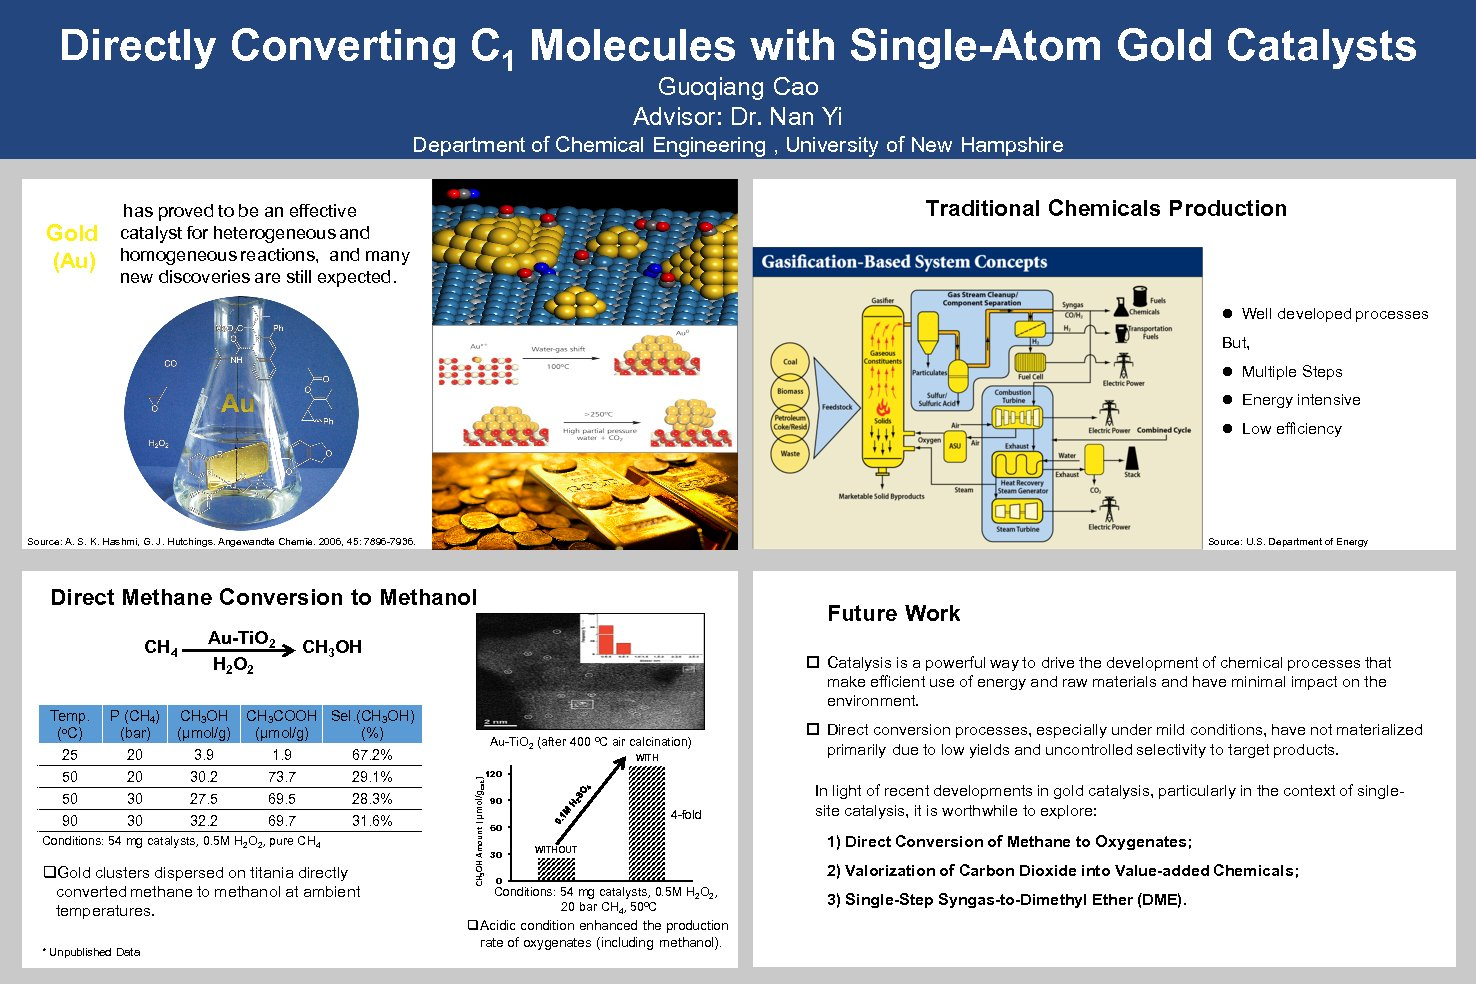 Directly Converting C1 Molecules With Single-Atom Gold Catalysts by cgqflyhigher